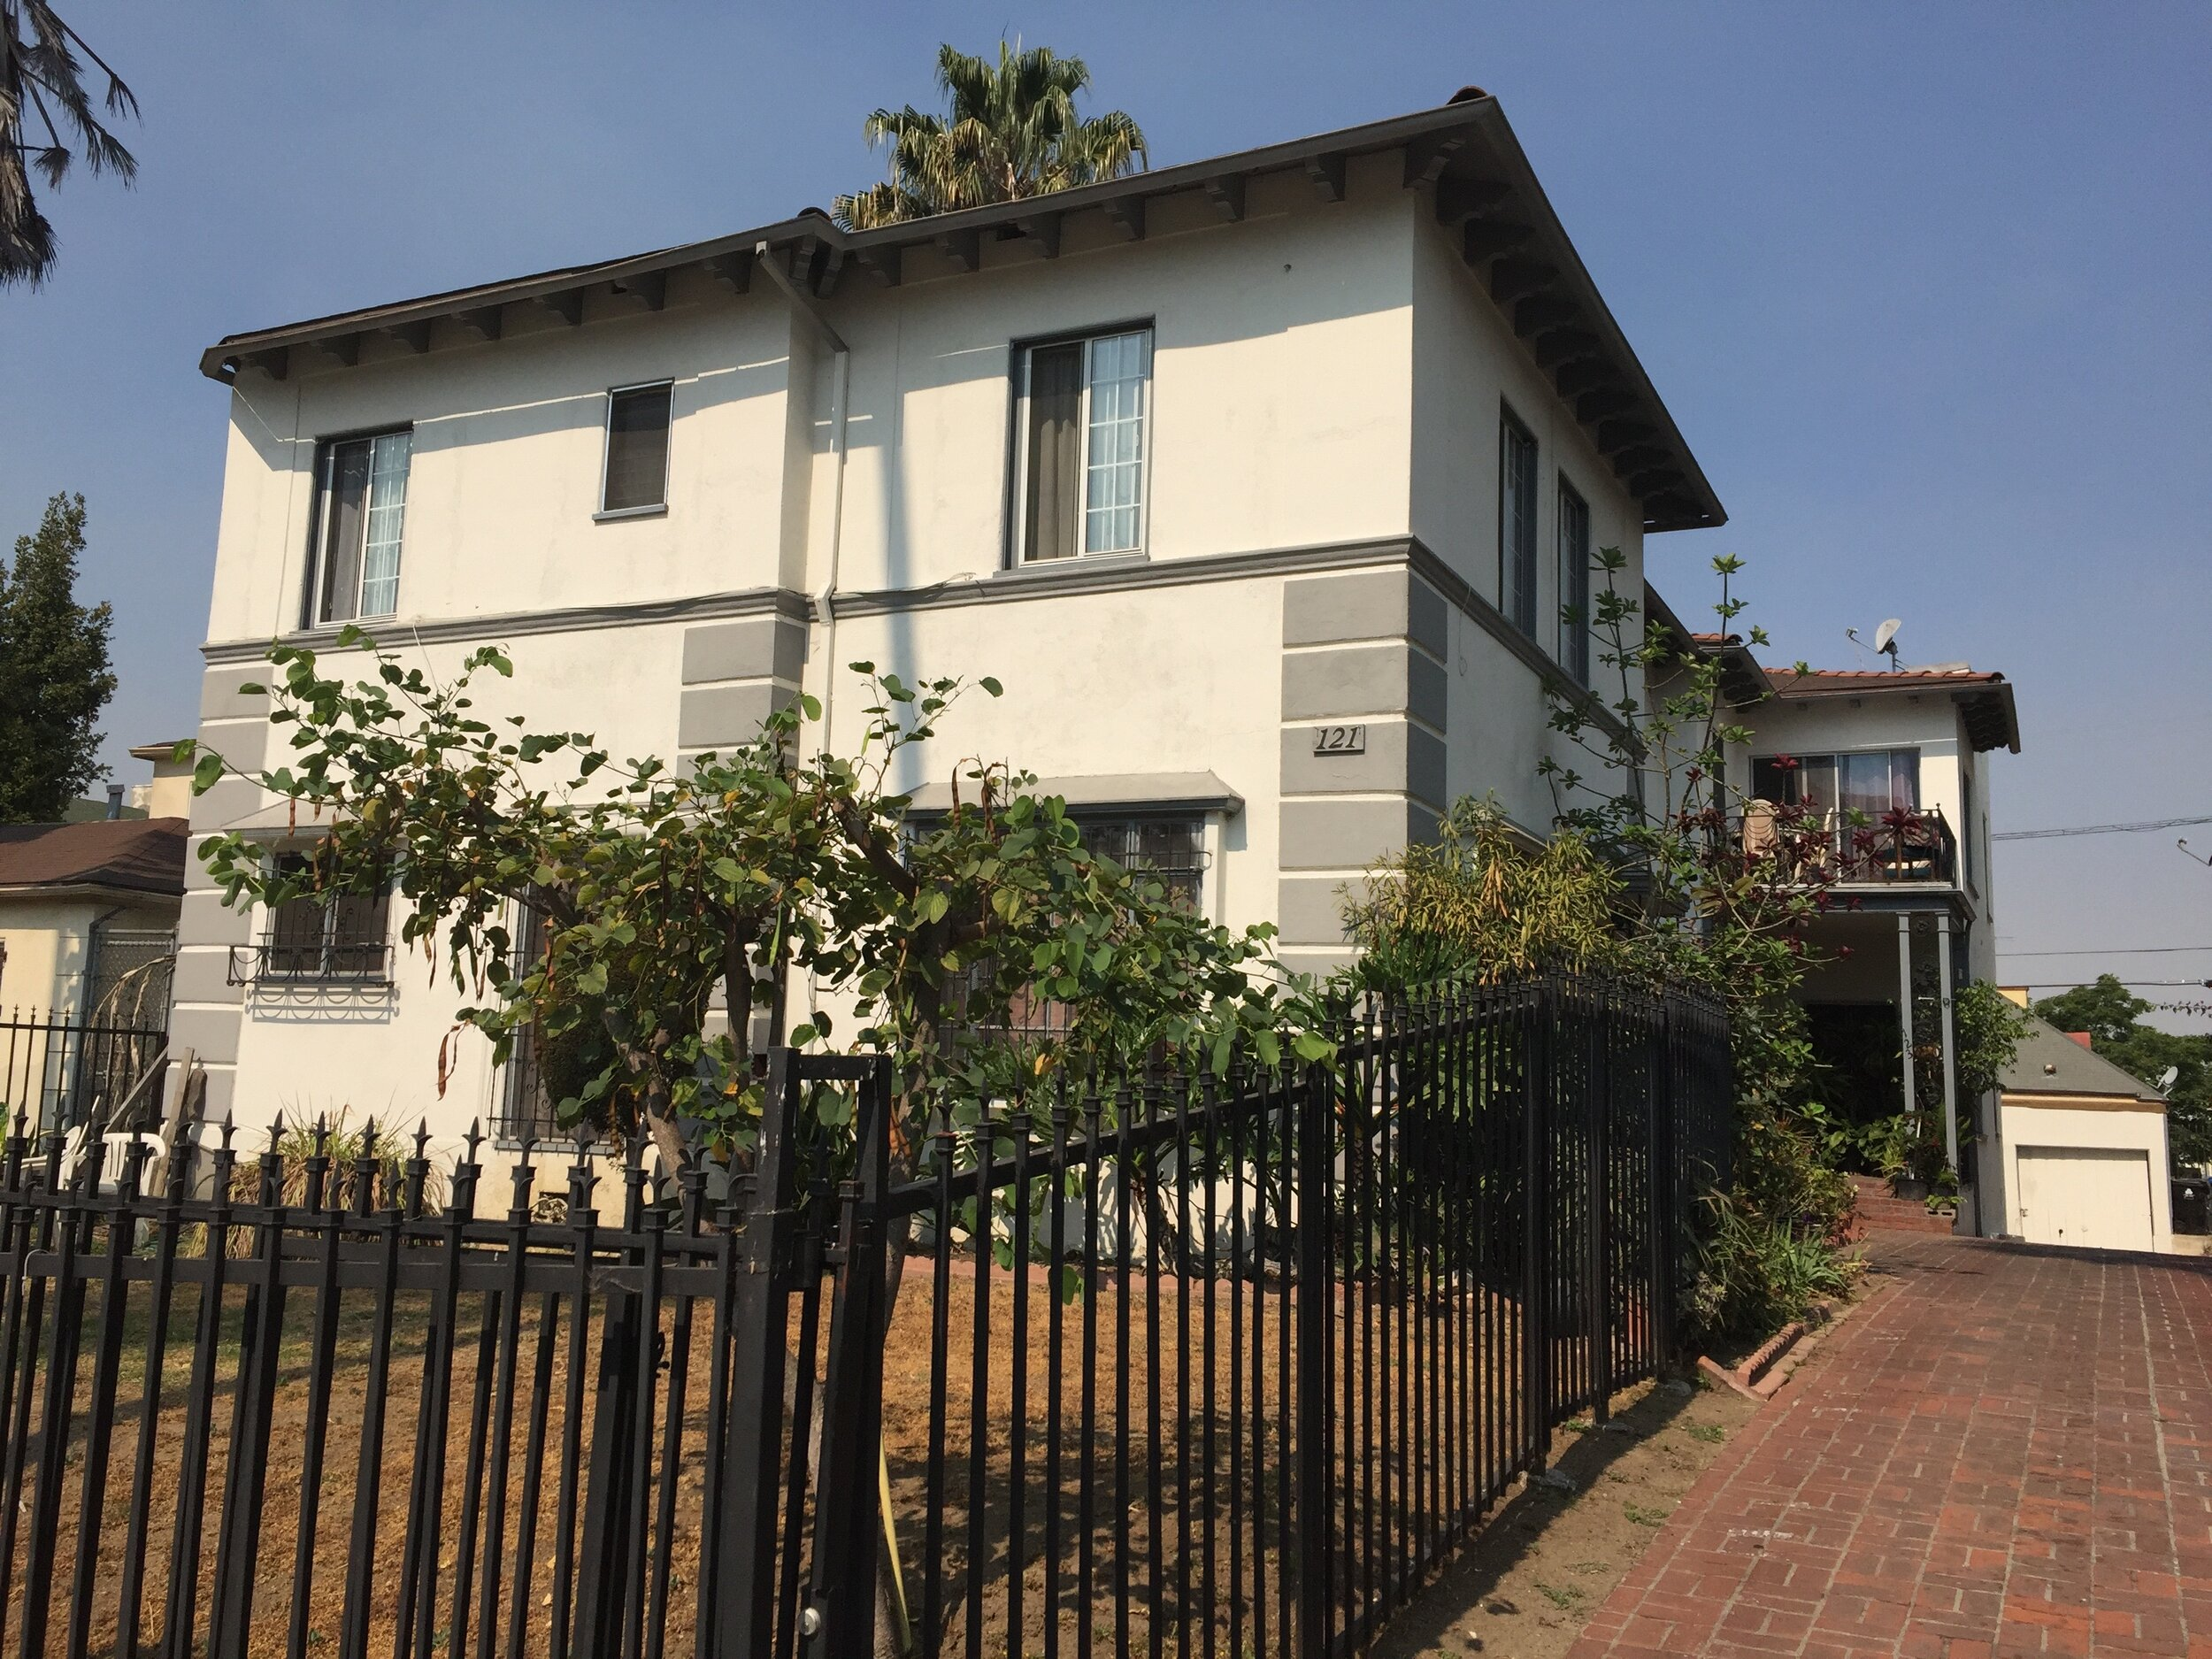 Catalina - 10 Unit Purchase Split Between Two Properties in Los Angeles, CAPurchased in July 2016Projected 4+ Year Hold